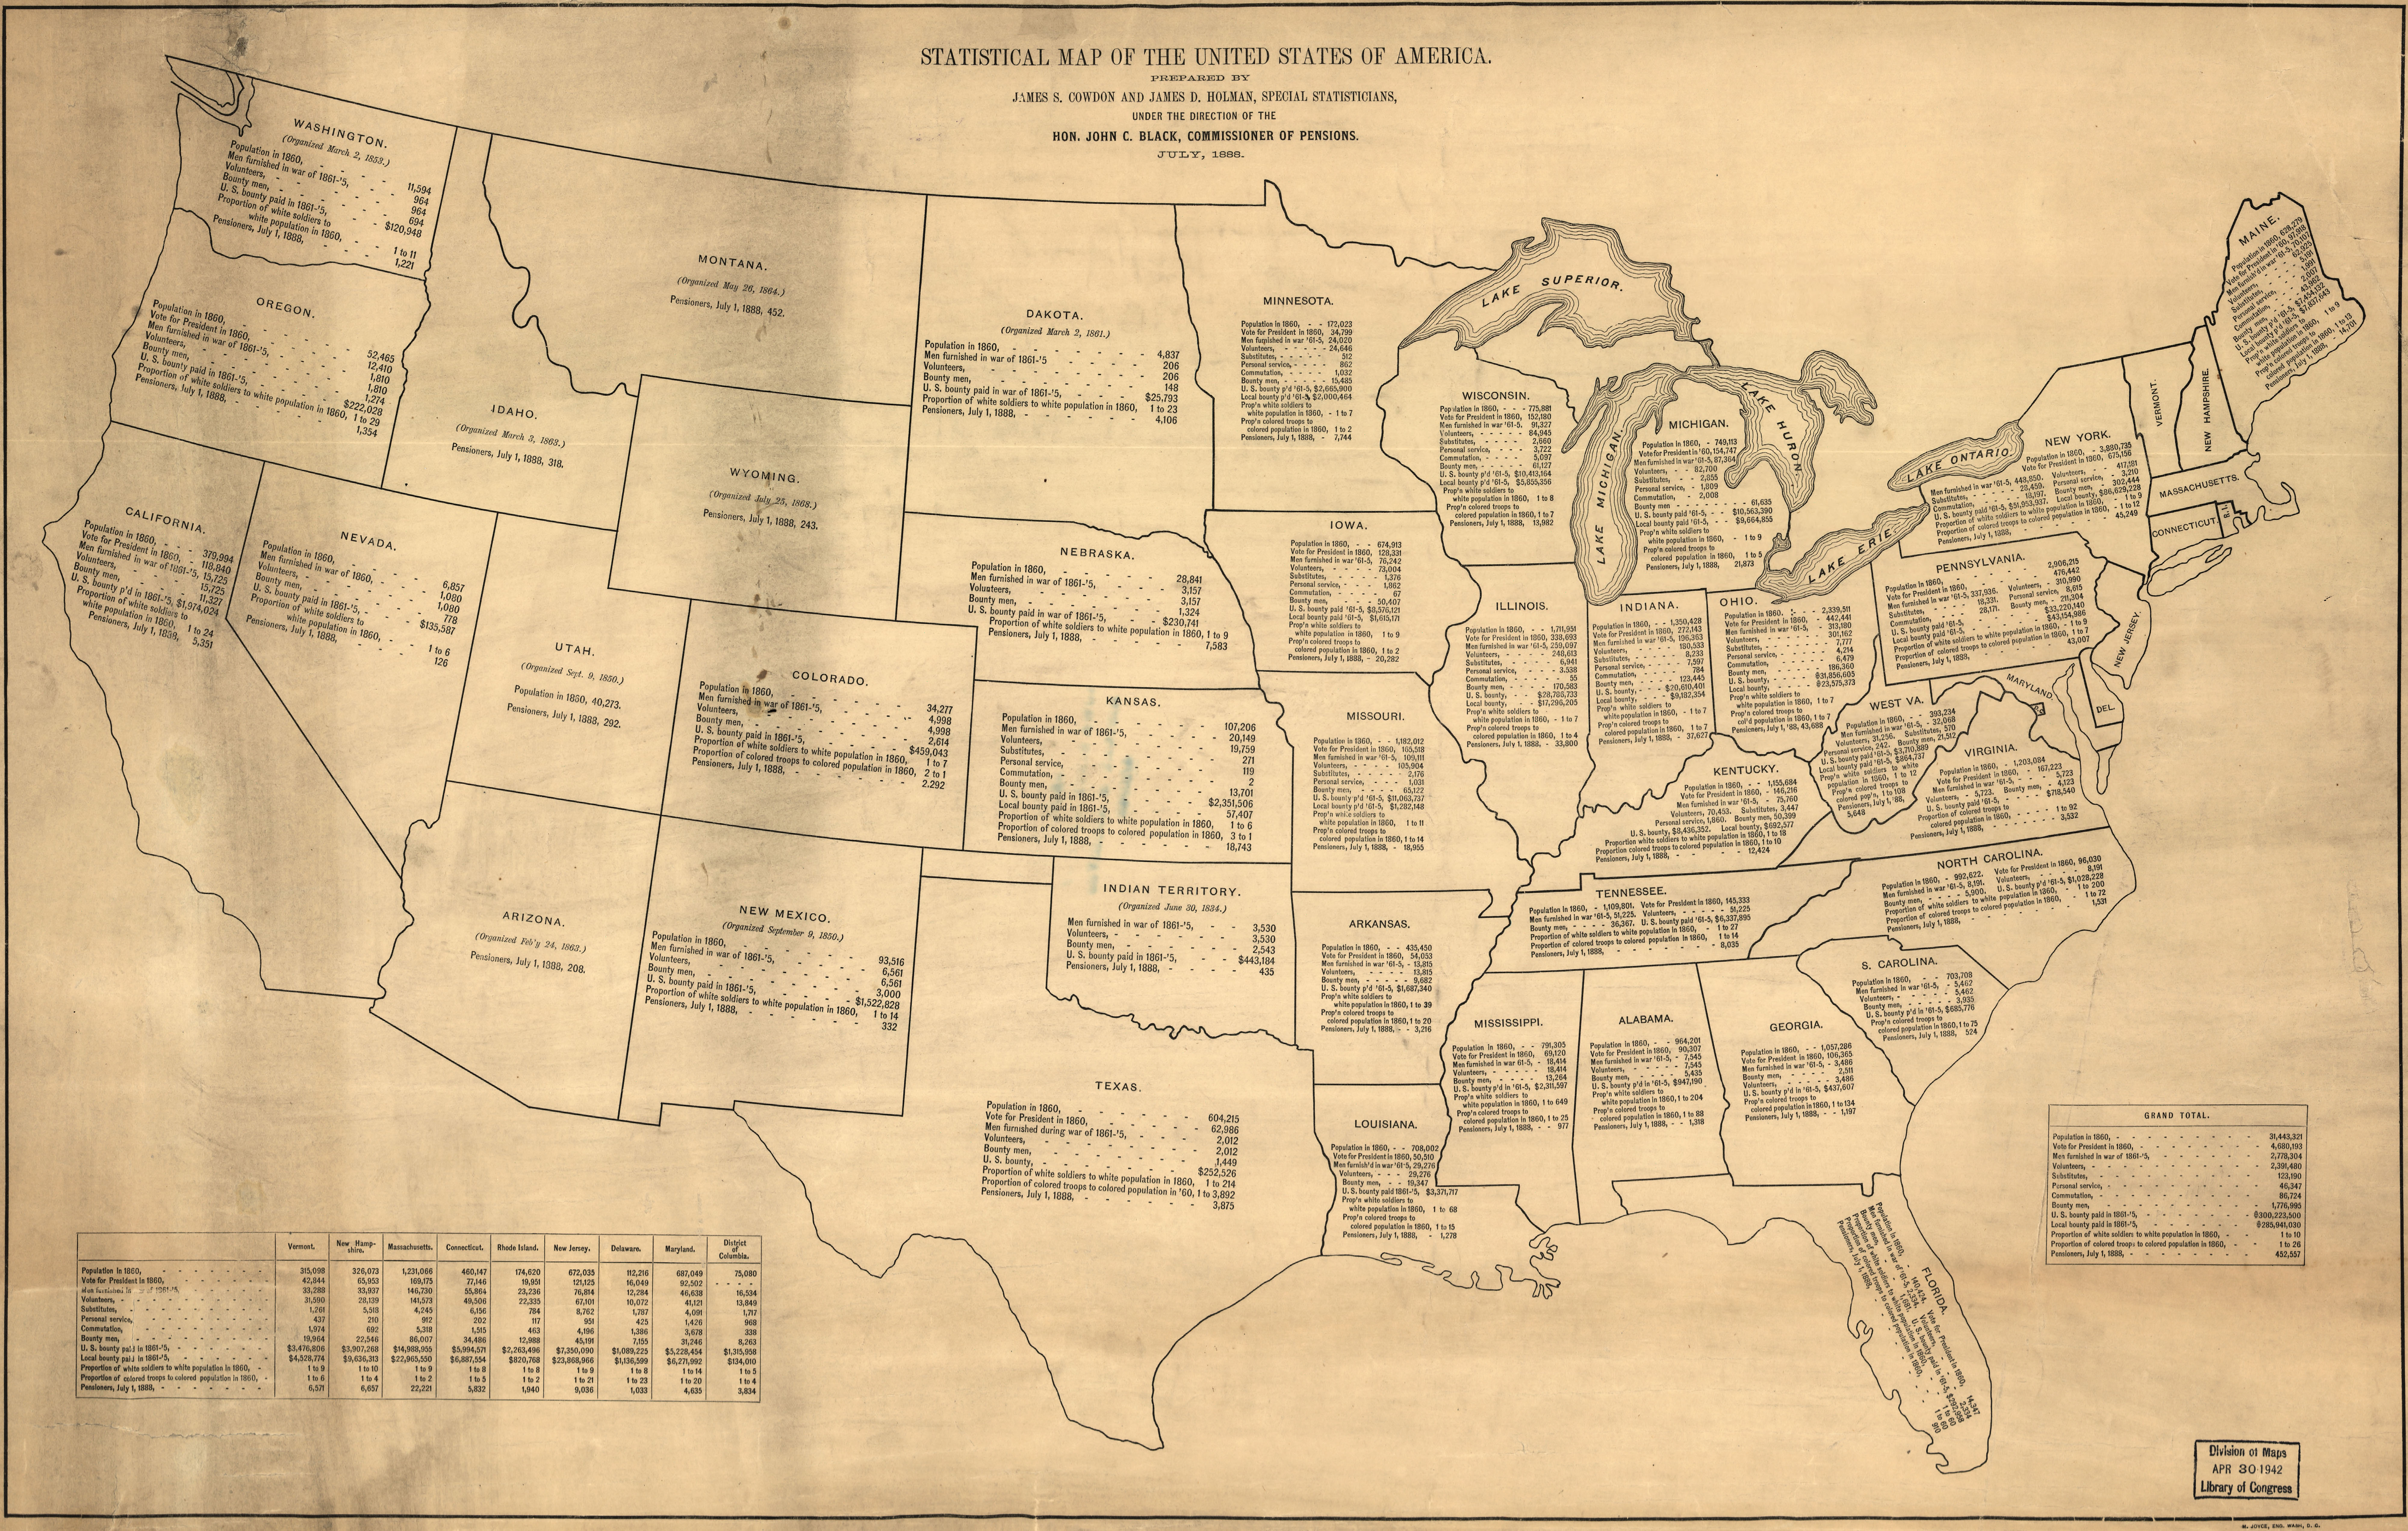 Vintage Infographic Cowdon's Statistical map of the U.S. (1888)